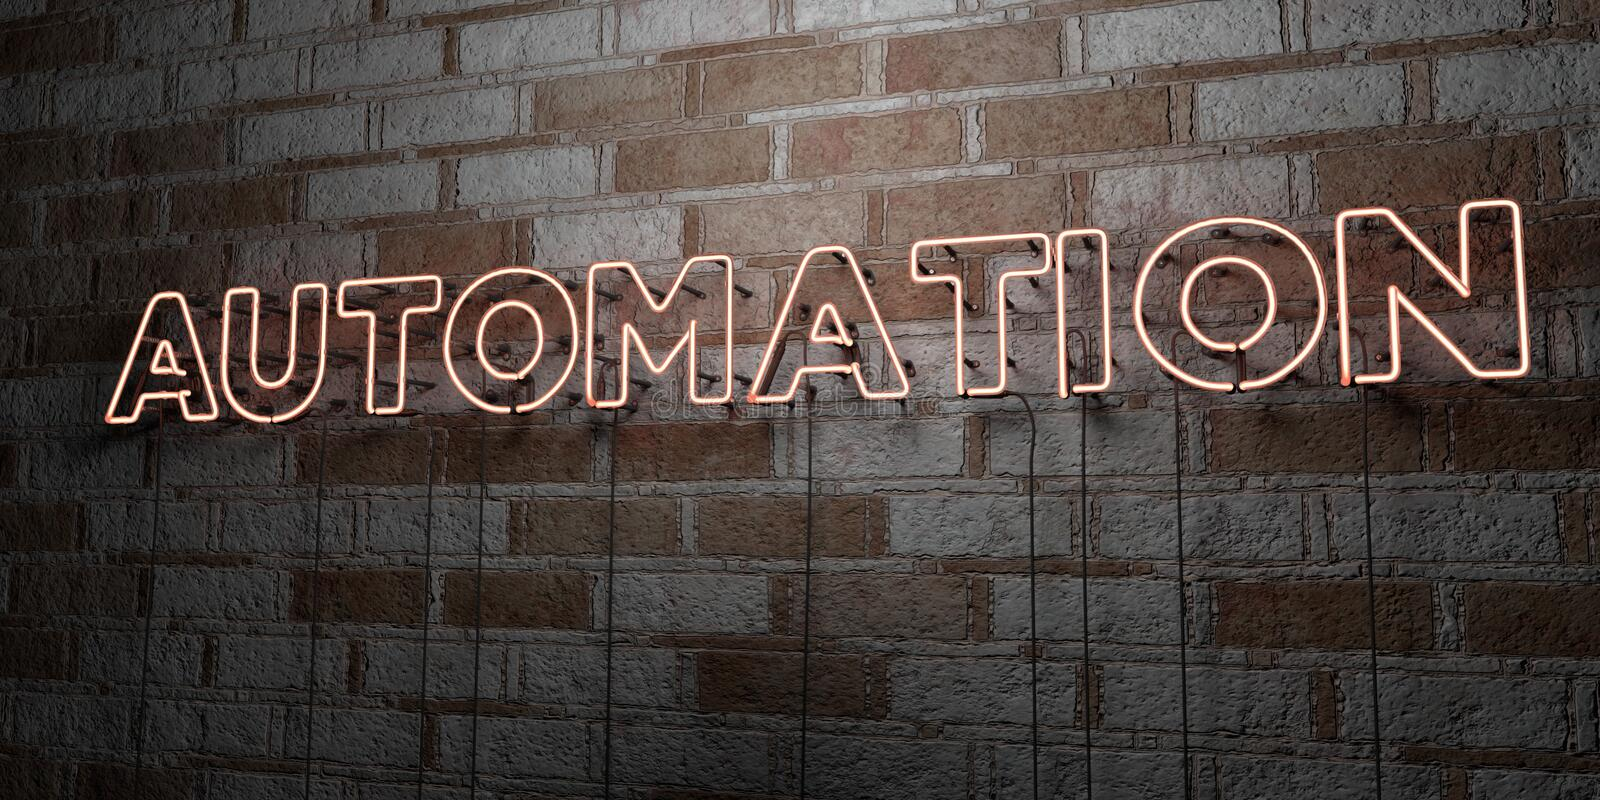 AUTOMATION - Glowing Neon Sign on stonework wall - 3D rendered royalty free stock illustration vector illustration